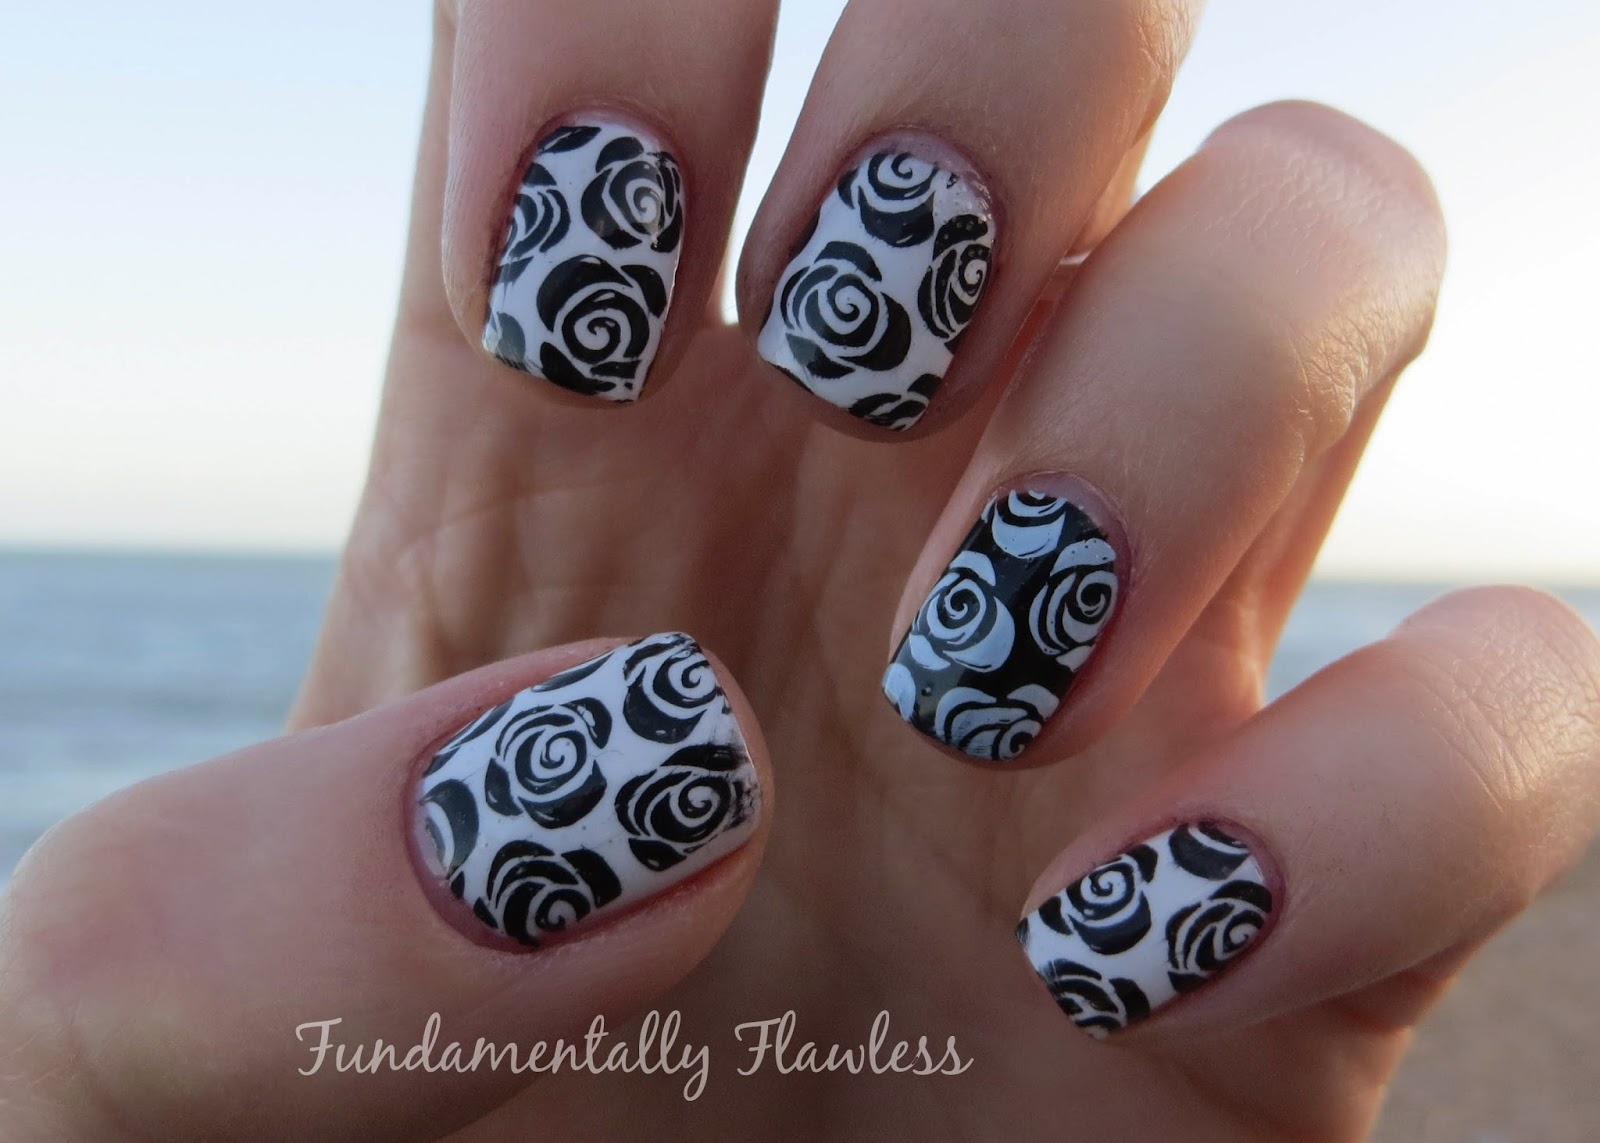 Fundamentally Flawless Polish Party December Black And White